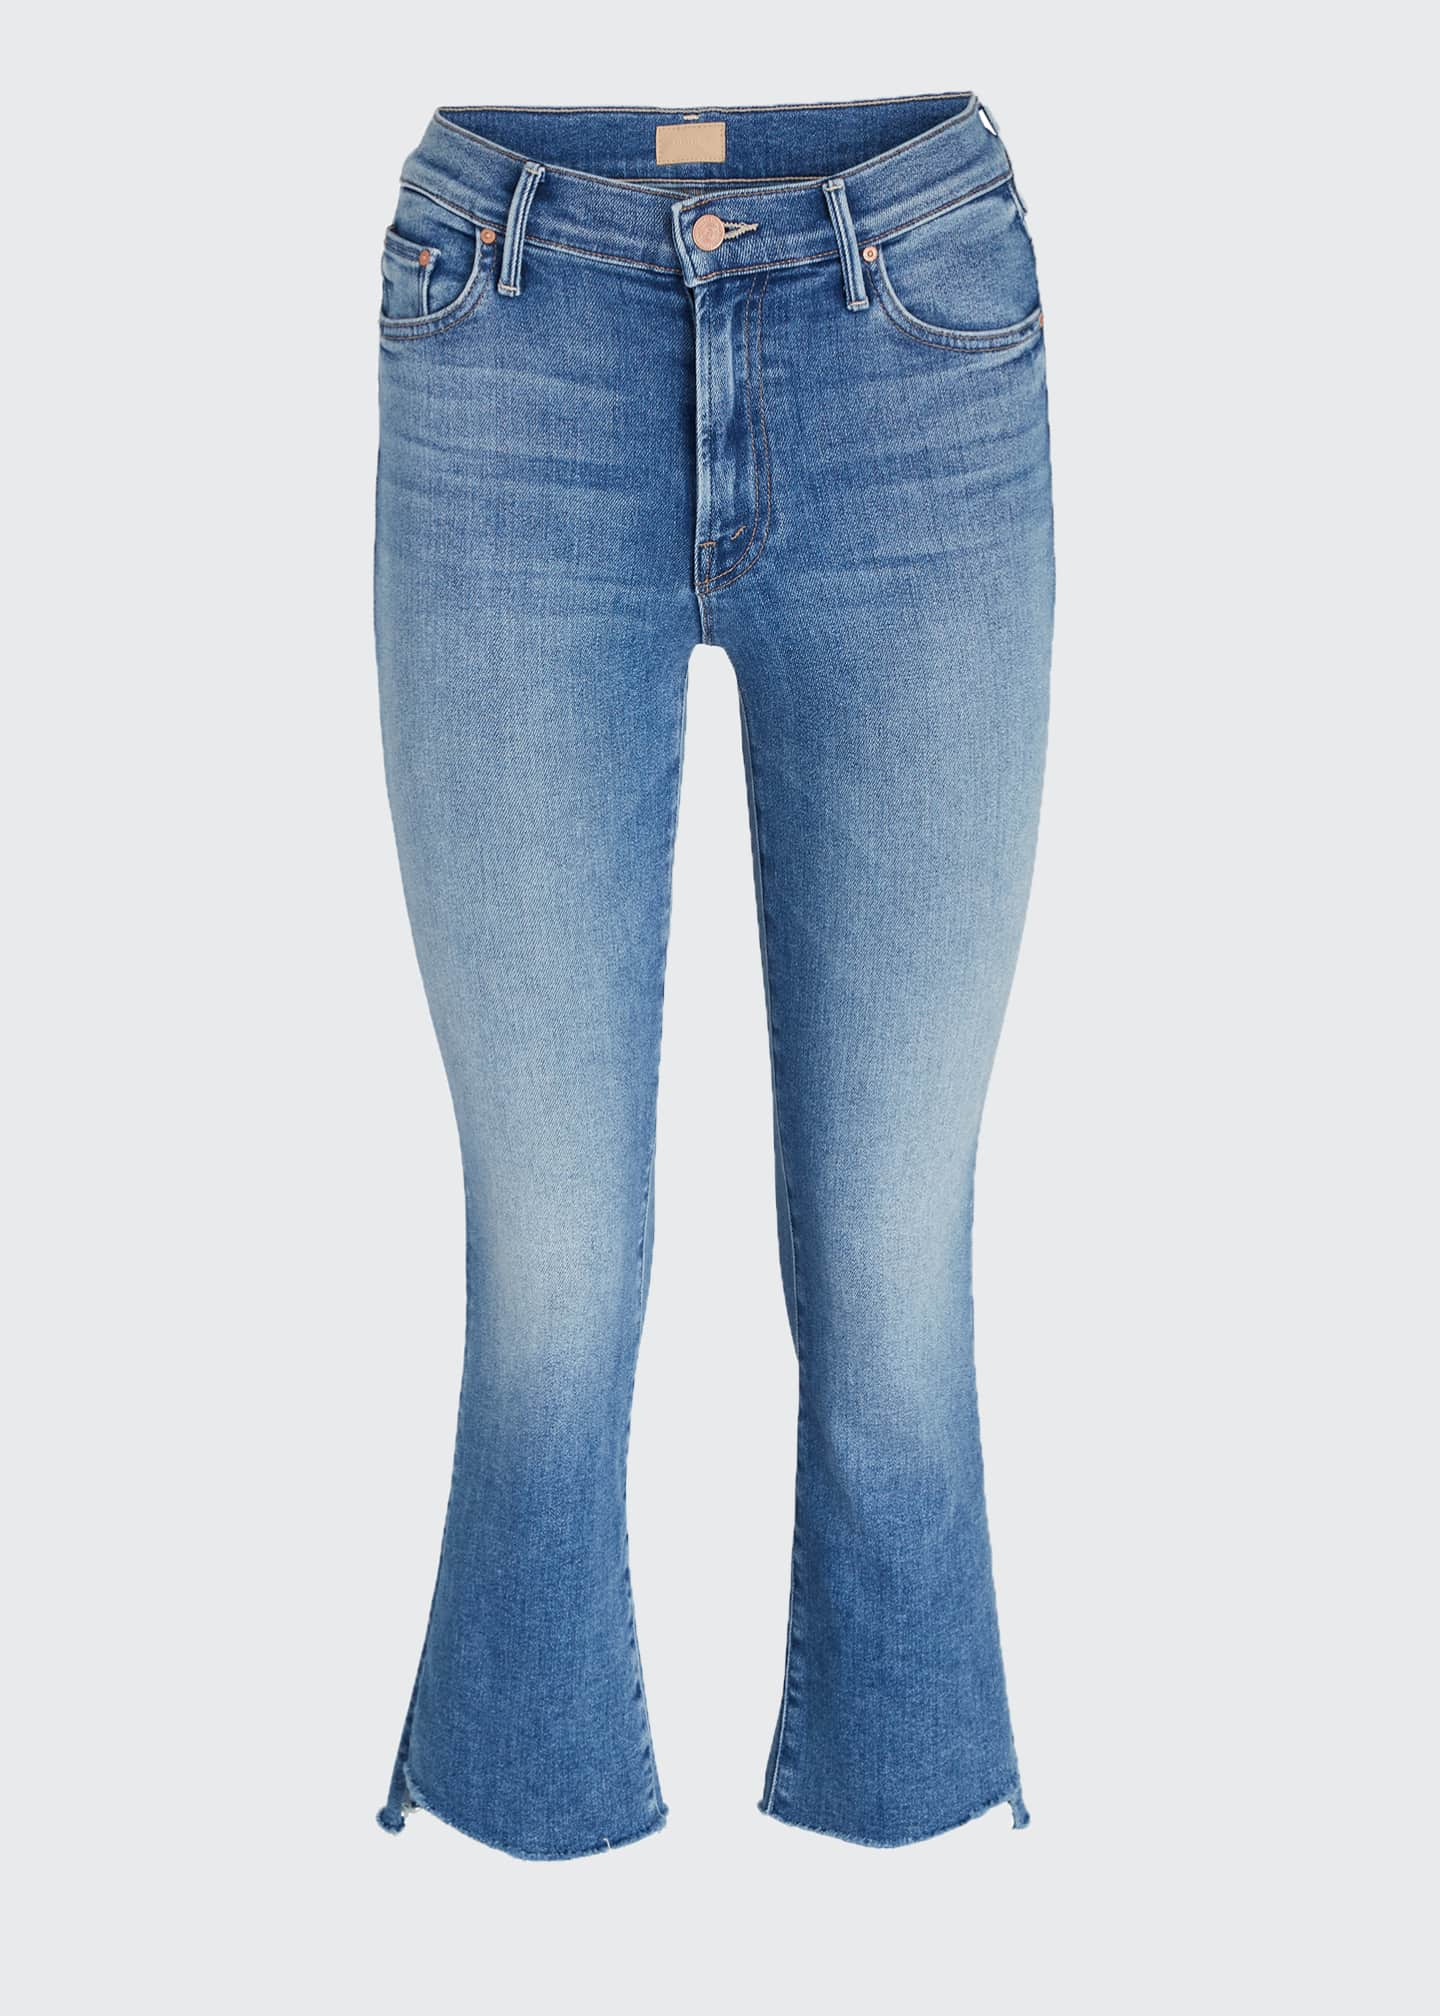 Image 5 of 5: The Insider Crop Step Fray Jeans